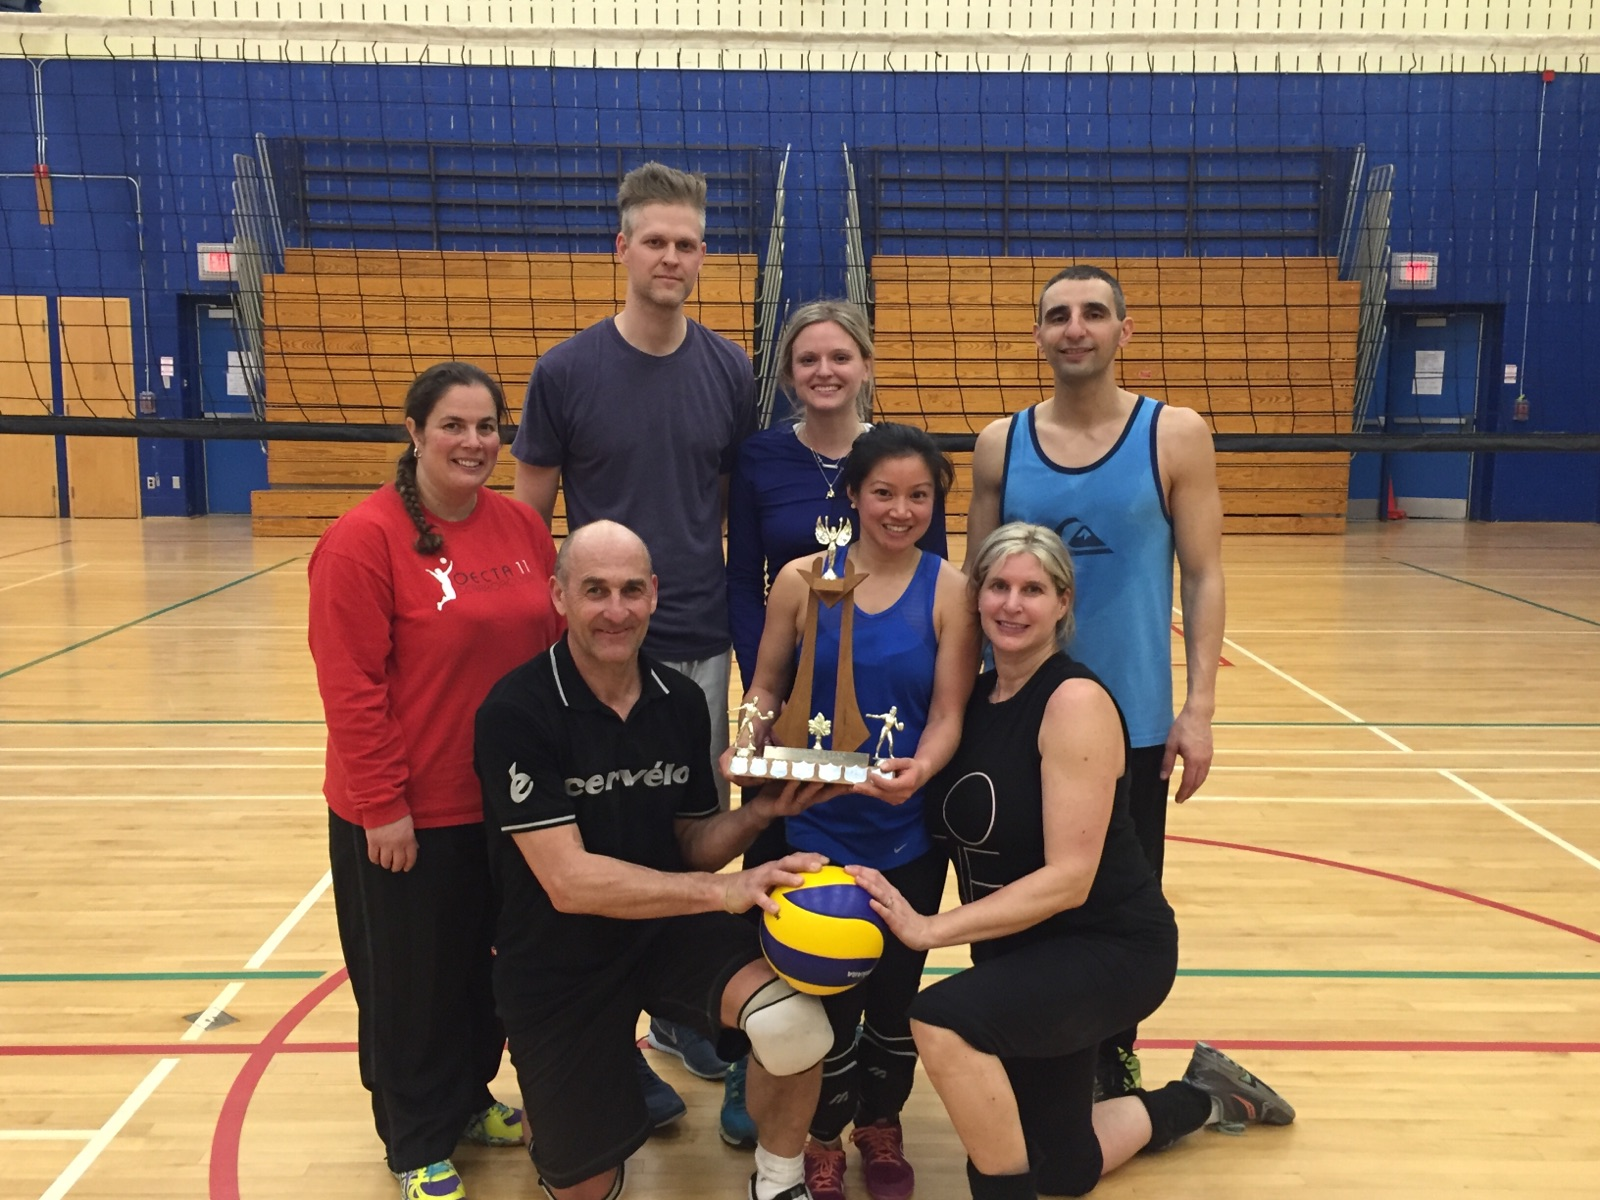 Congratulations to the team from St. Brendan Catholic School, winner of this year's TECT Level B Volleyball Championships.